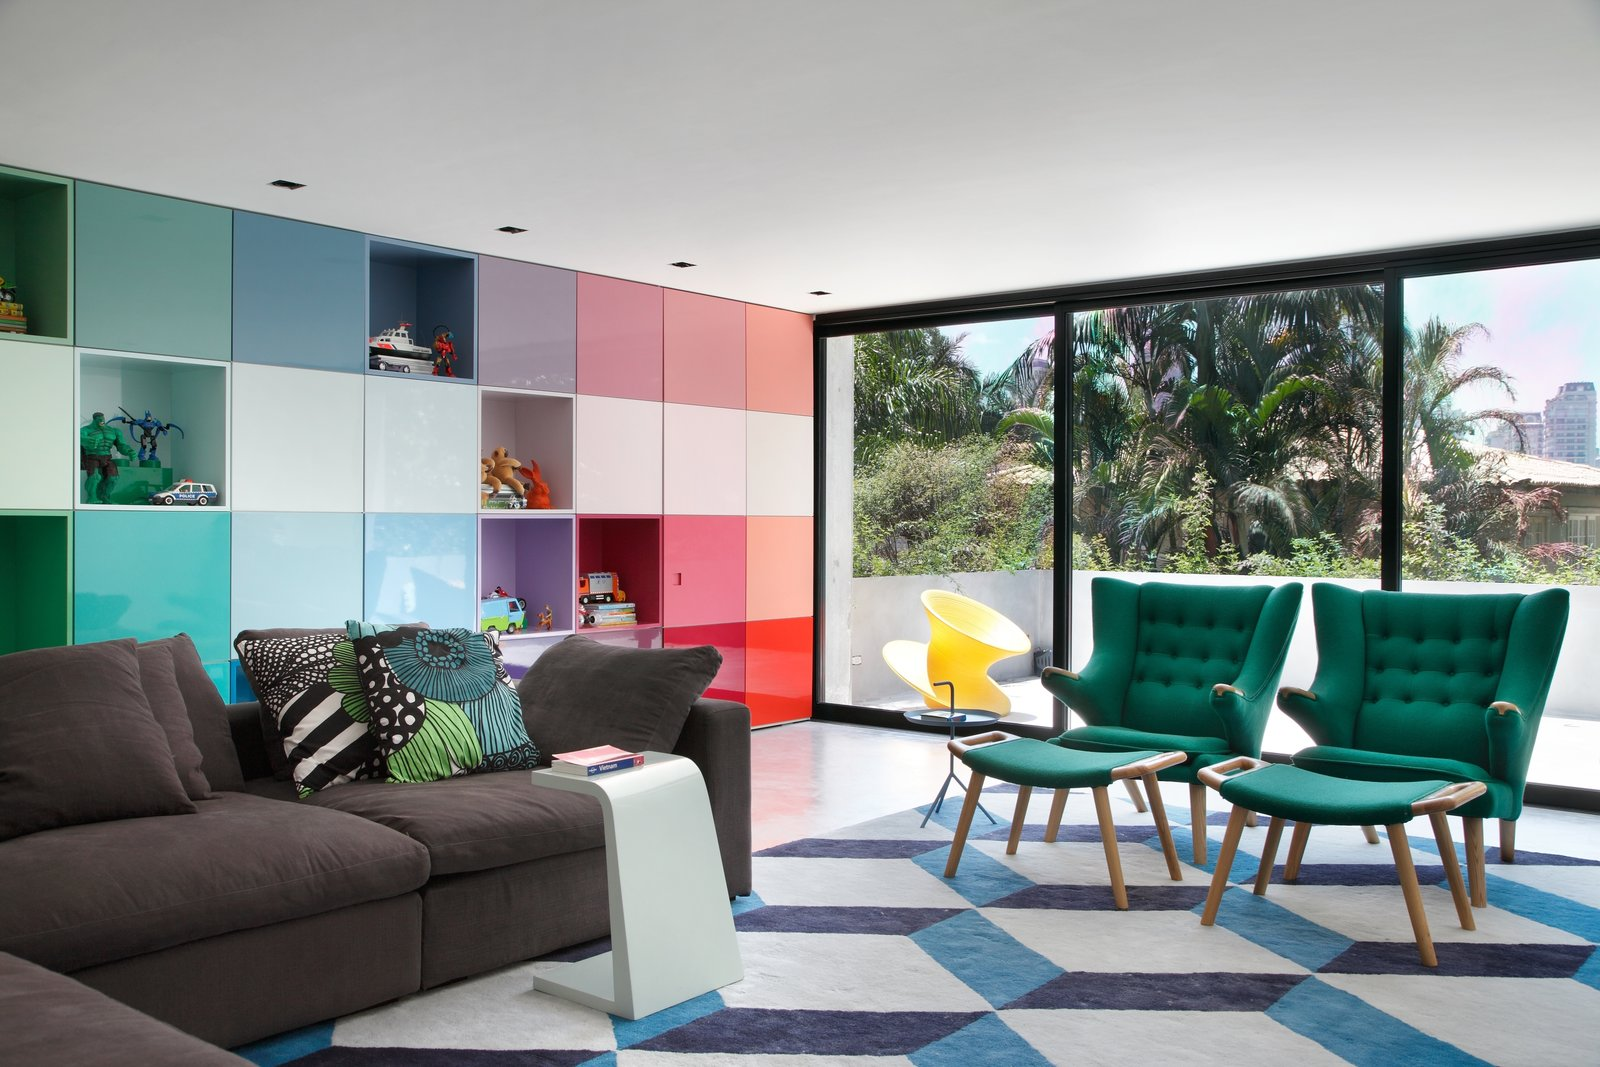 6 Modern Paint Colors That Make A Bold Statement